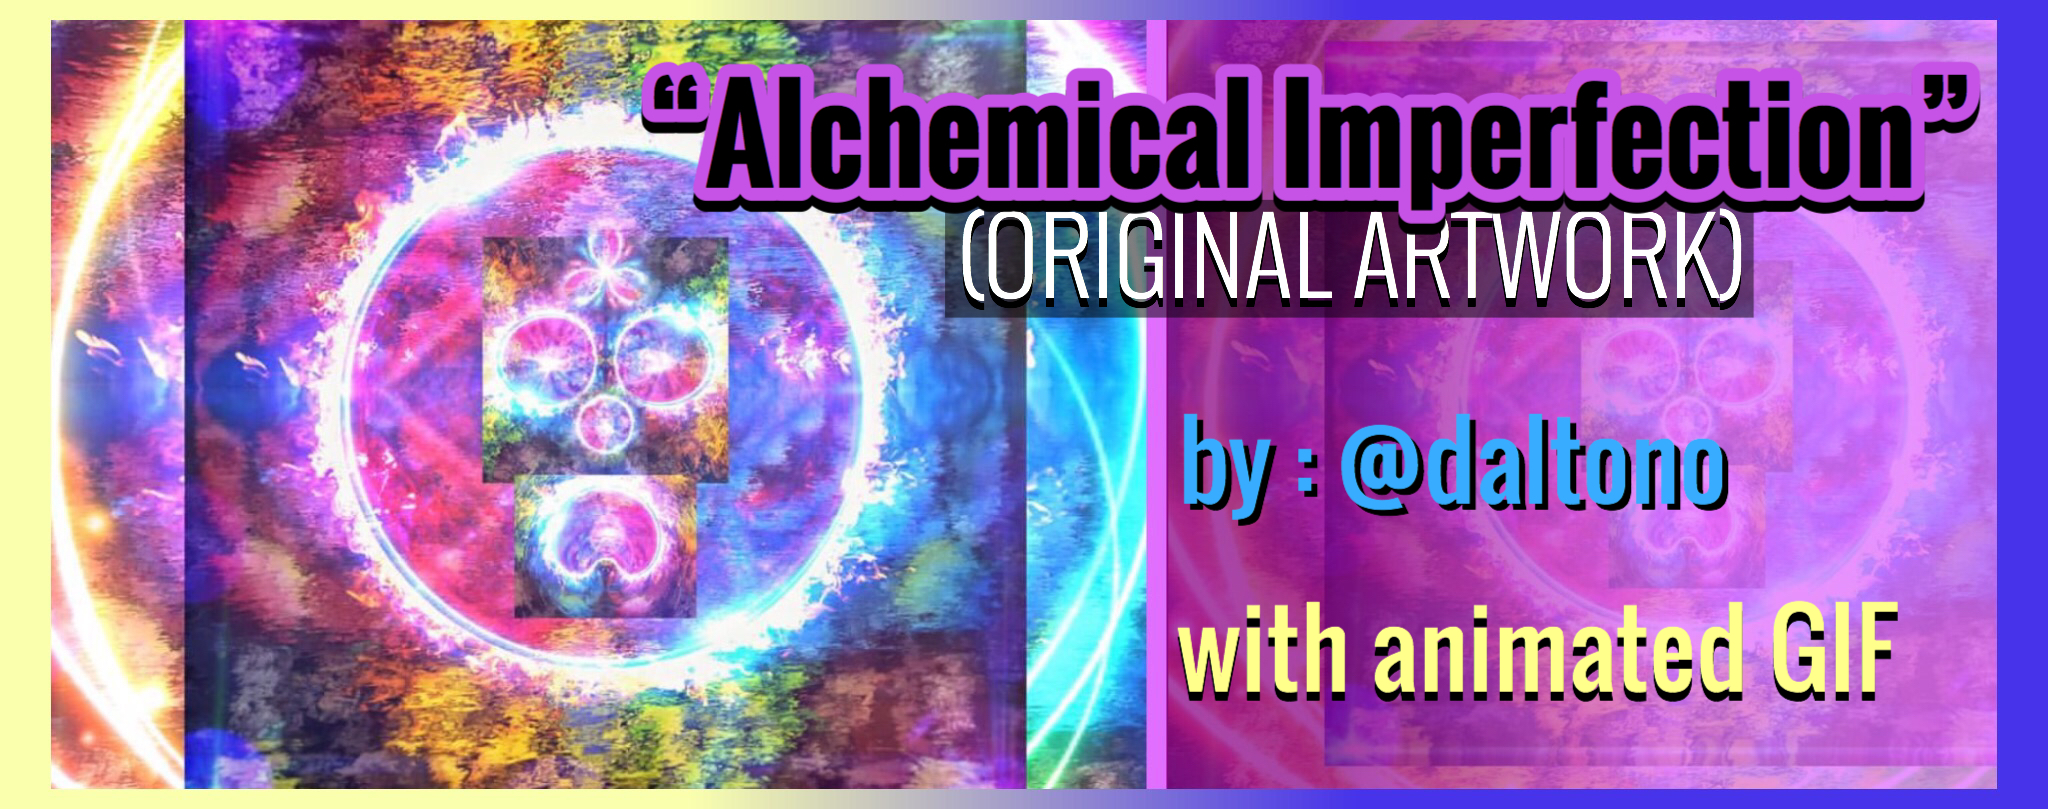 alchemical-imperfection-thumbnail.JPG